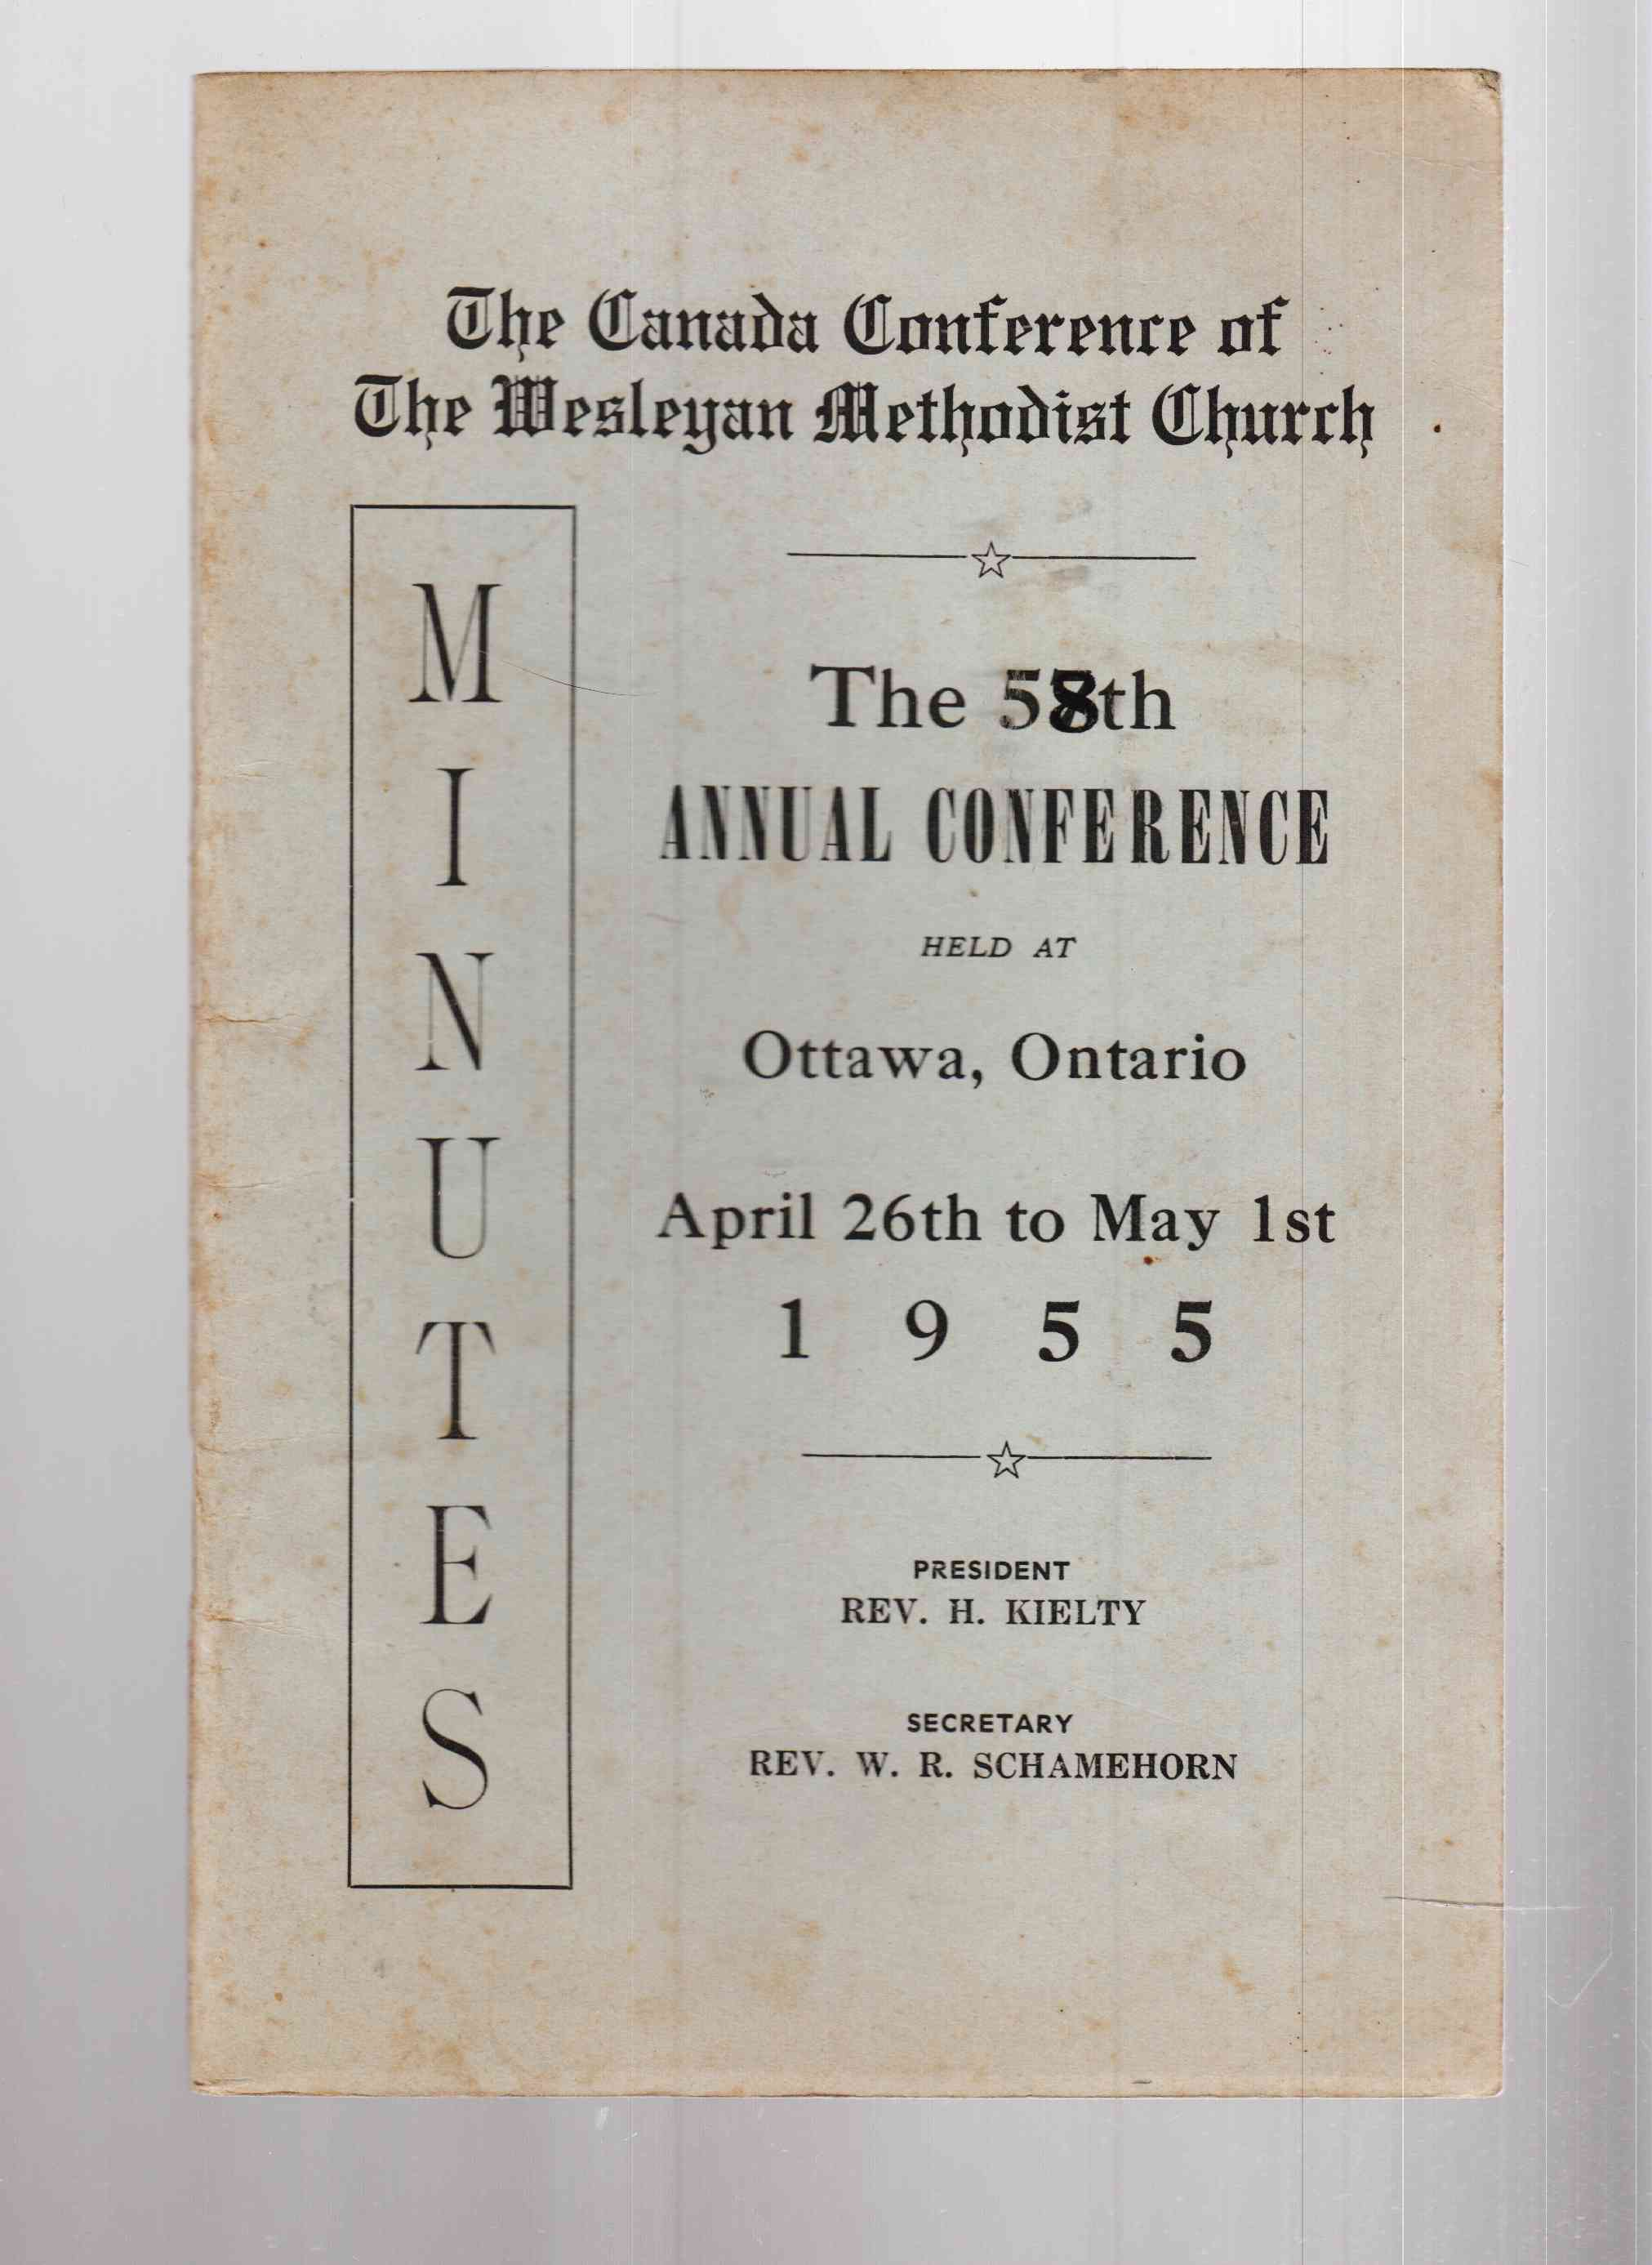 Image for The Canada Conference of the Wesleyan Methodist Church Minutes of the 58th Annual Conference Held At Ottawa, Ontario April 26th to May 1st 1955